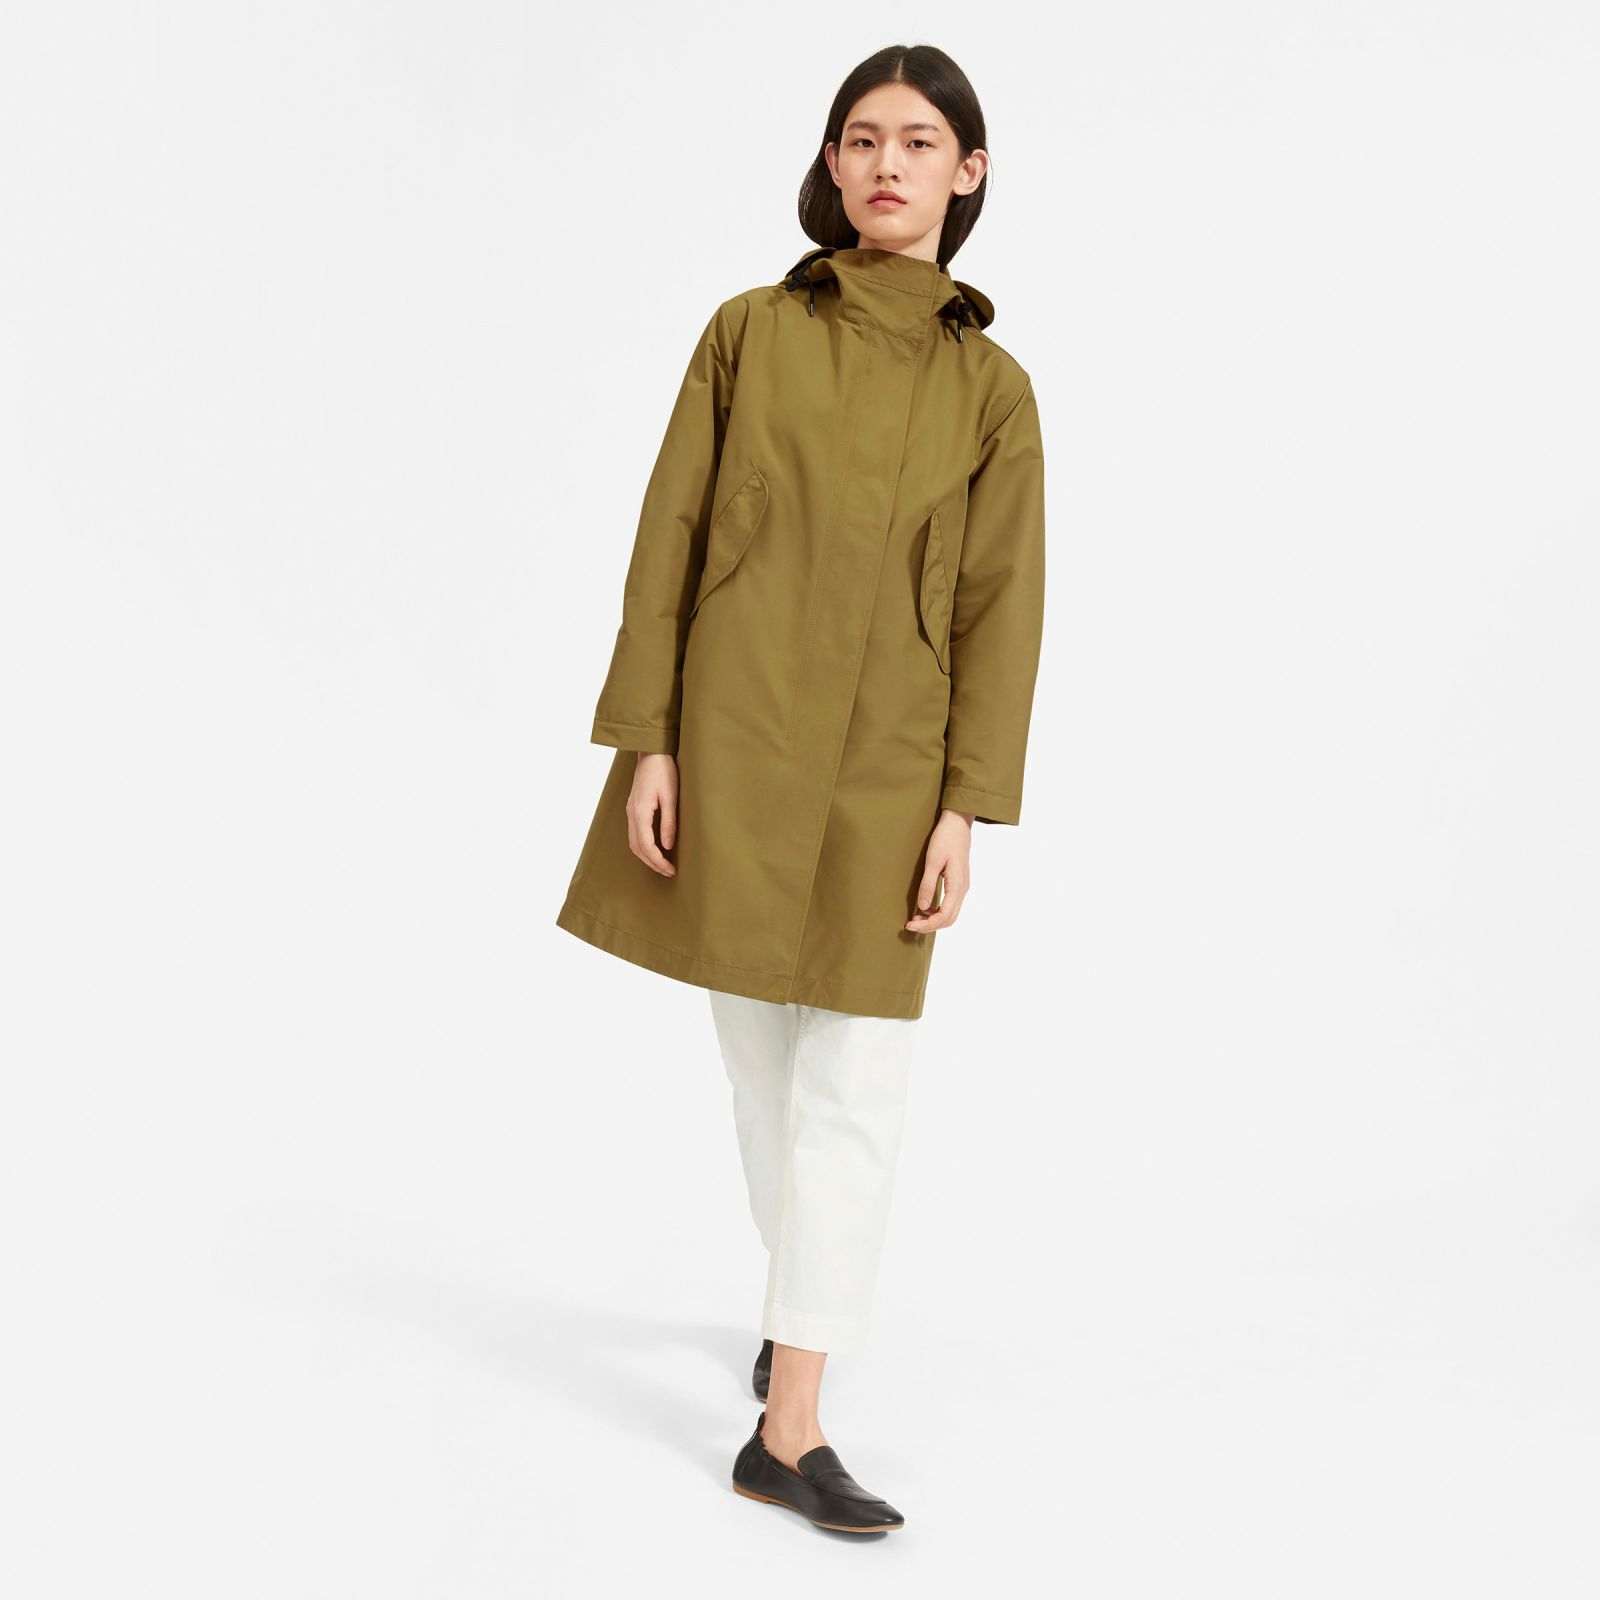 women's renew anorak jacket by everlane in olive, size xl